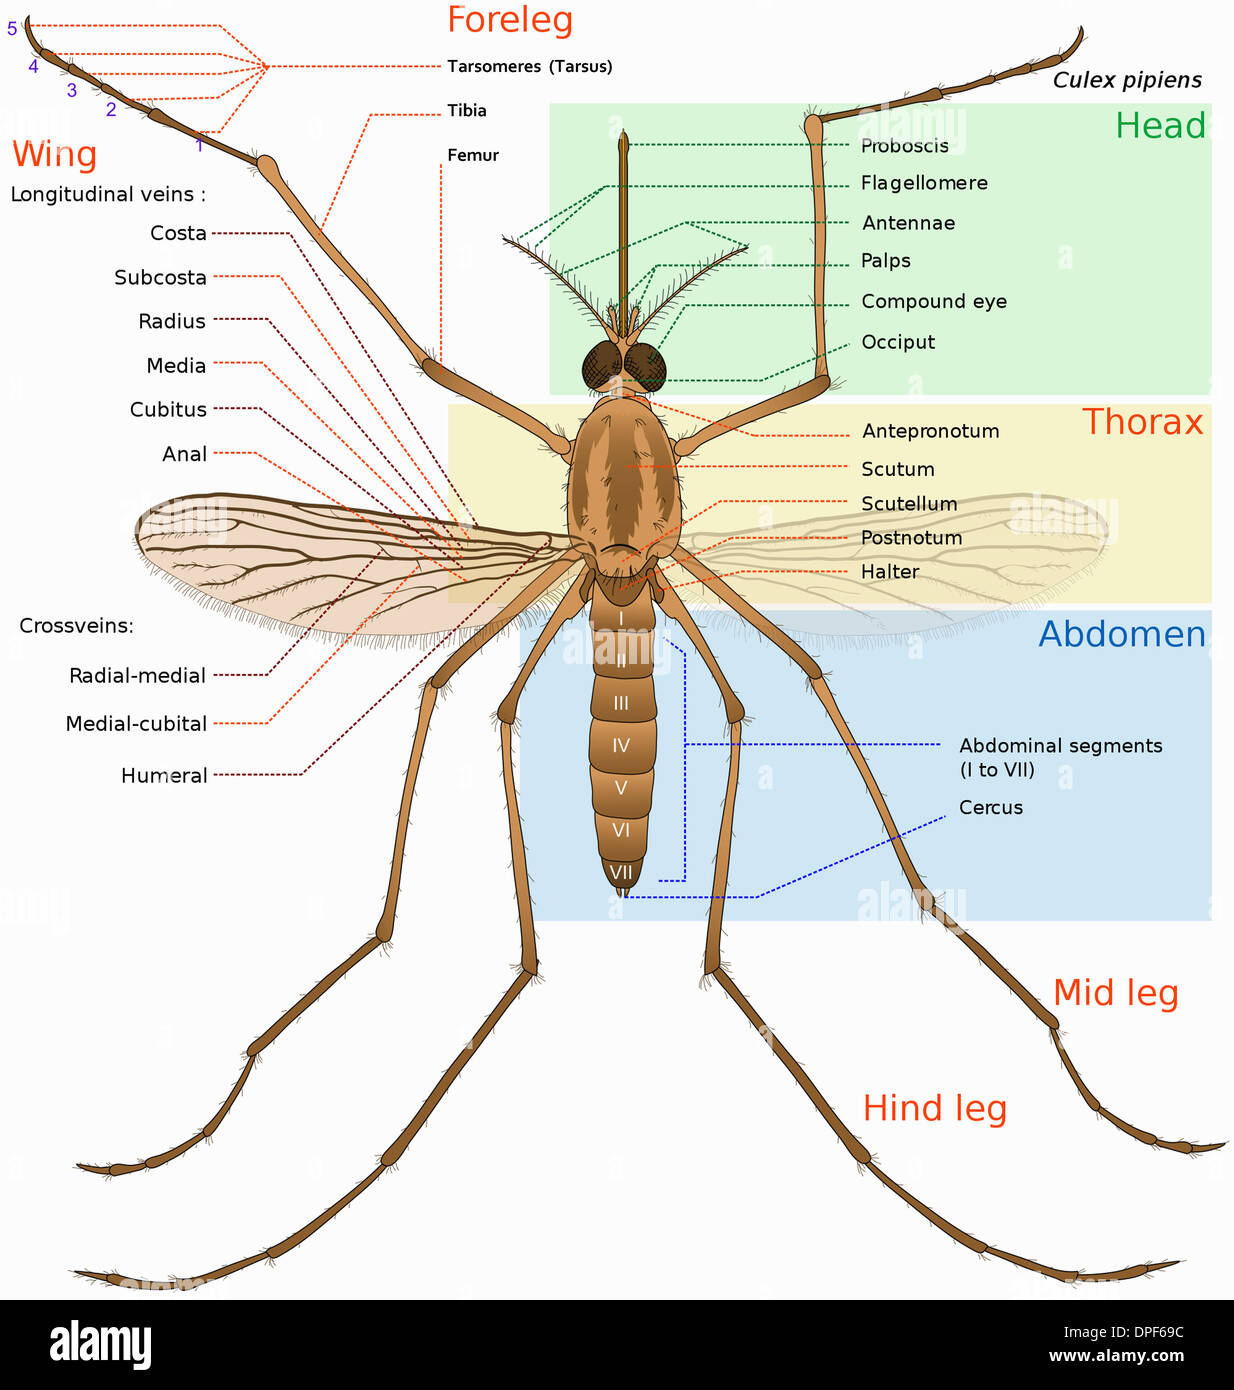 Insects Anatomy Stock Photos & Insects Anatomy Stock Images - Alamy